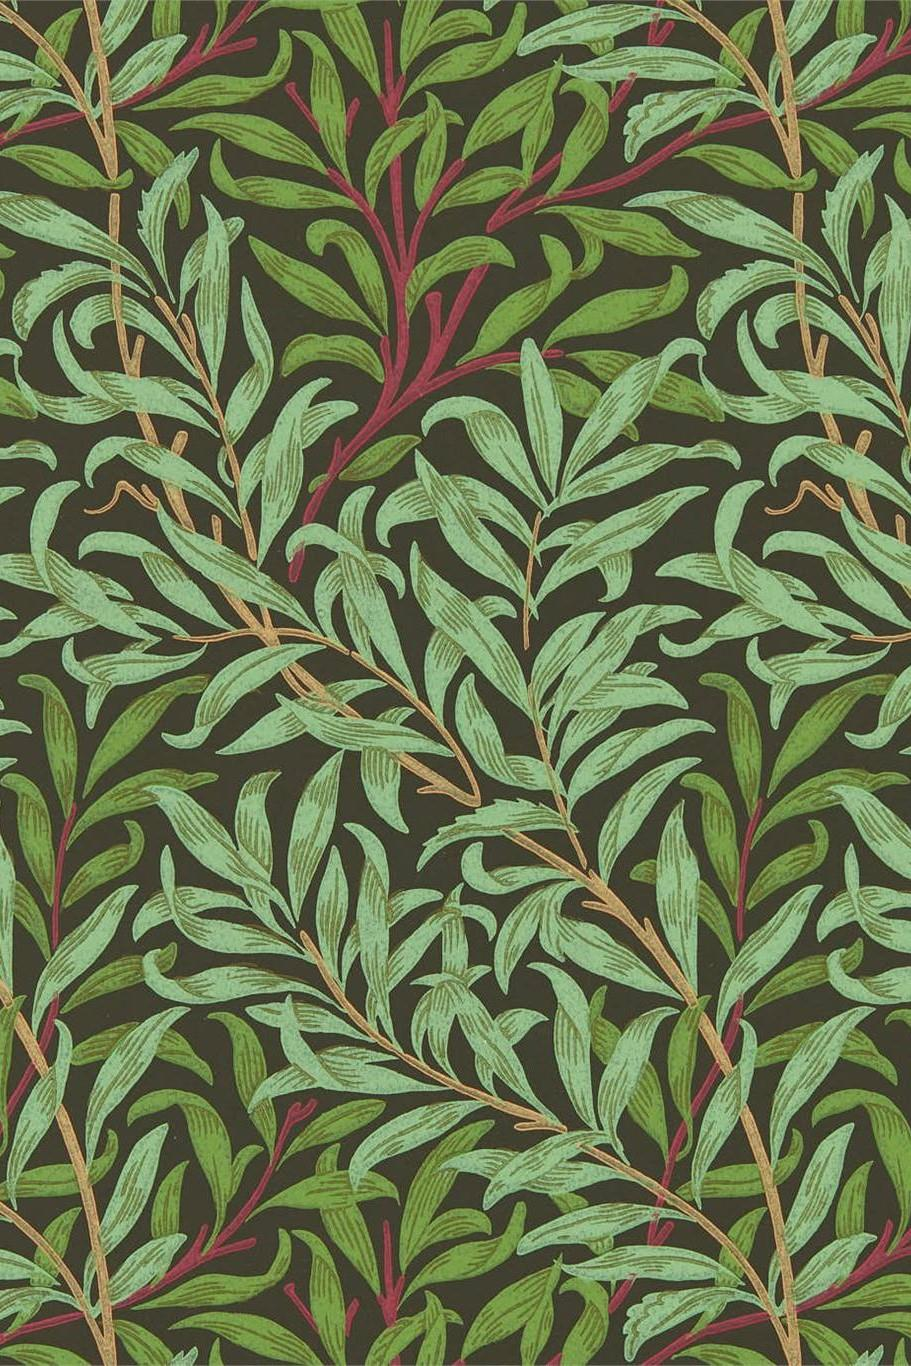 Morris & Co Queen Square Willow Bough Wallpaper DBPW216950